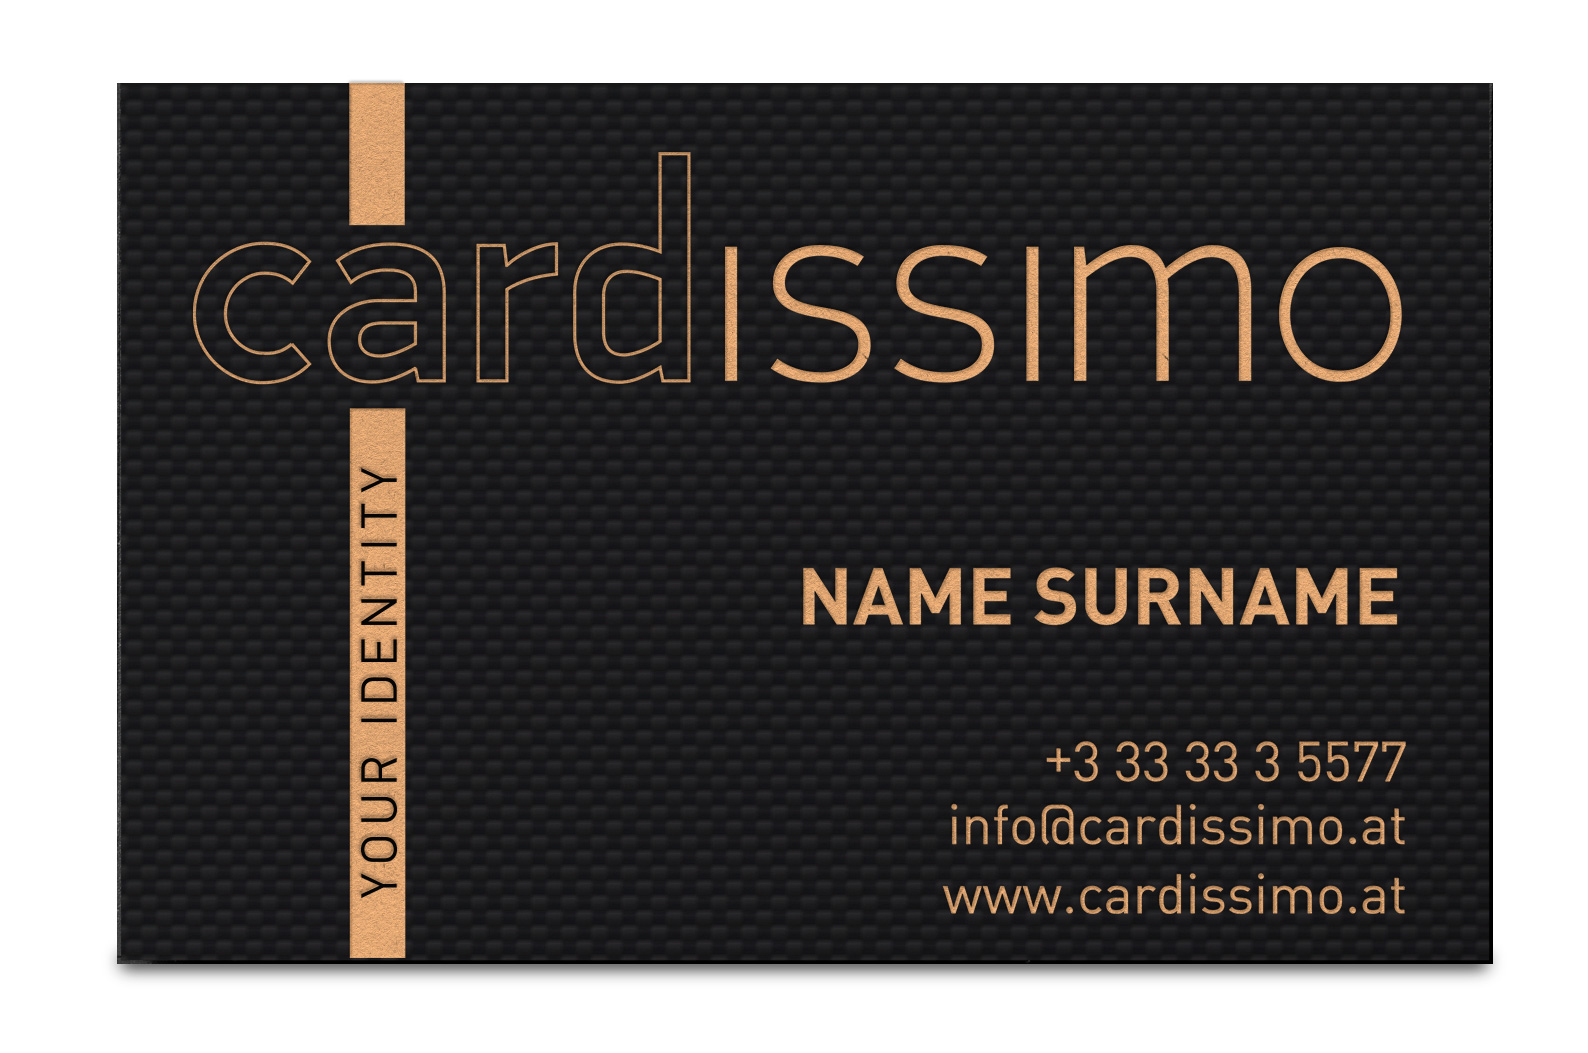 Carbon Fibre Business Cards - CARDISSIMO - Your Identity